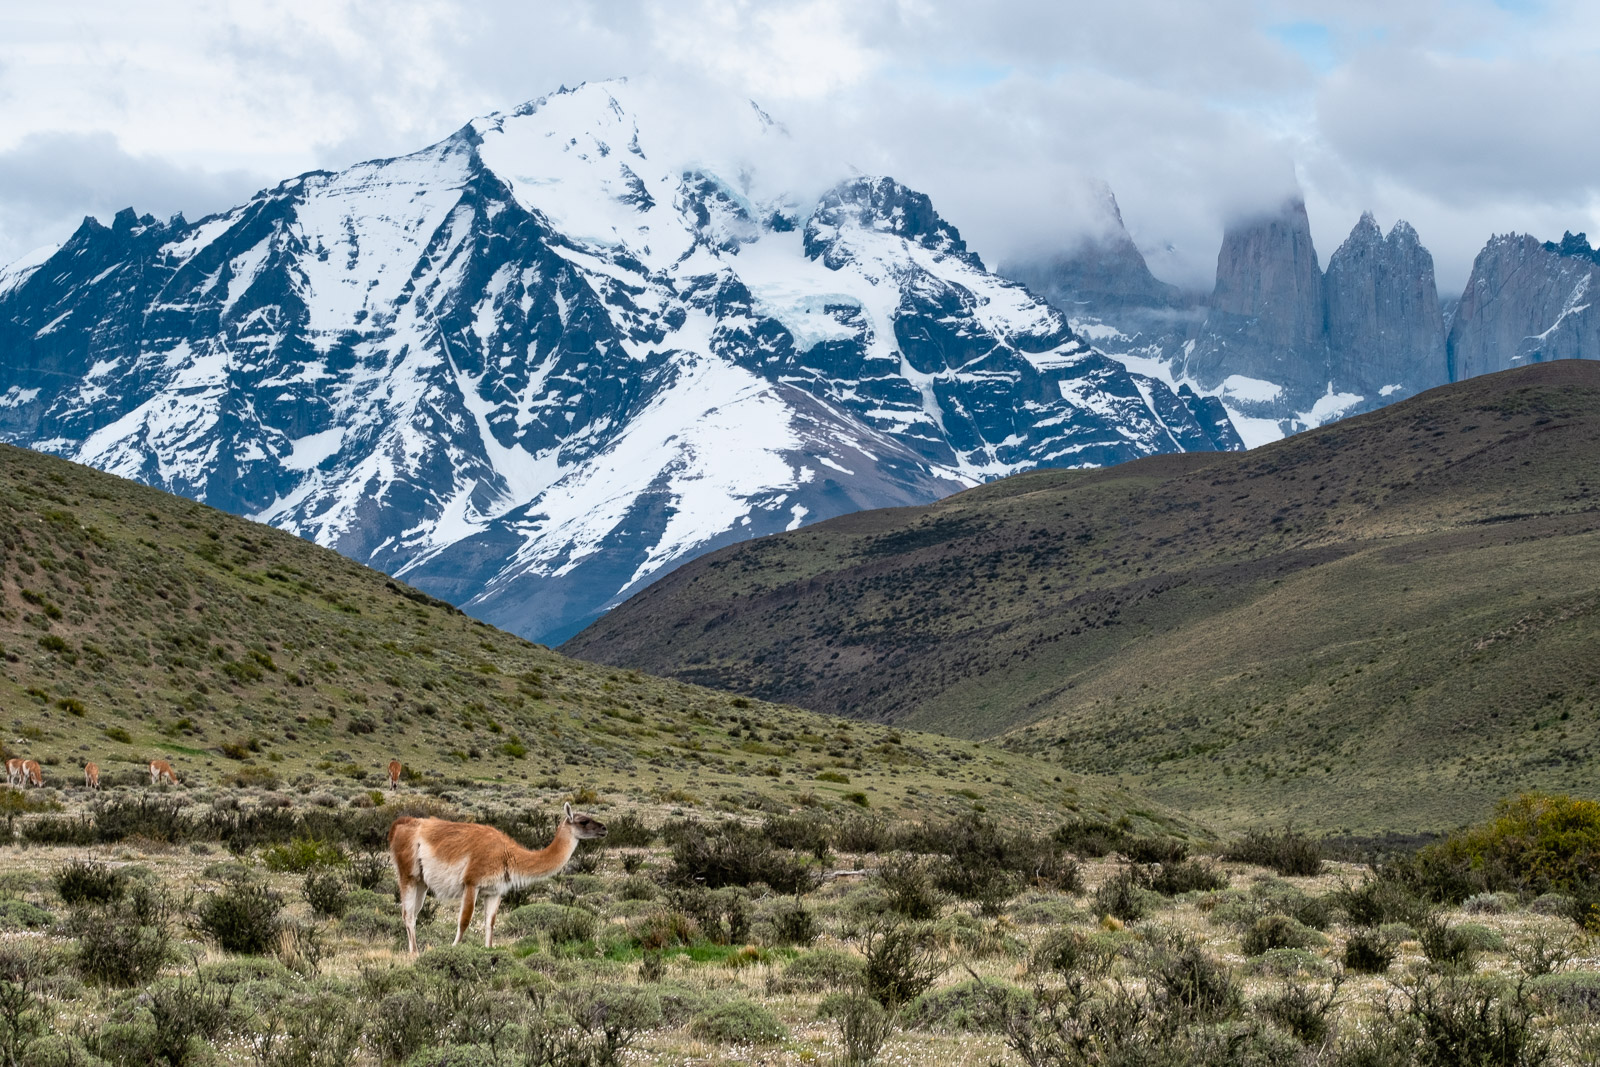 parc national chili torres del paine patagonie guanaco